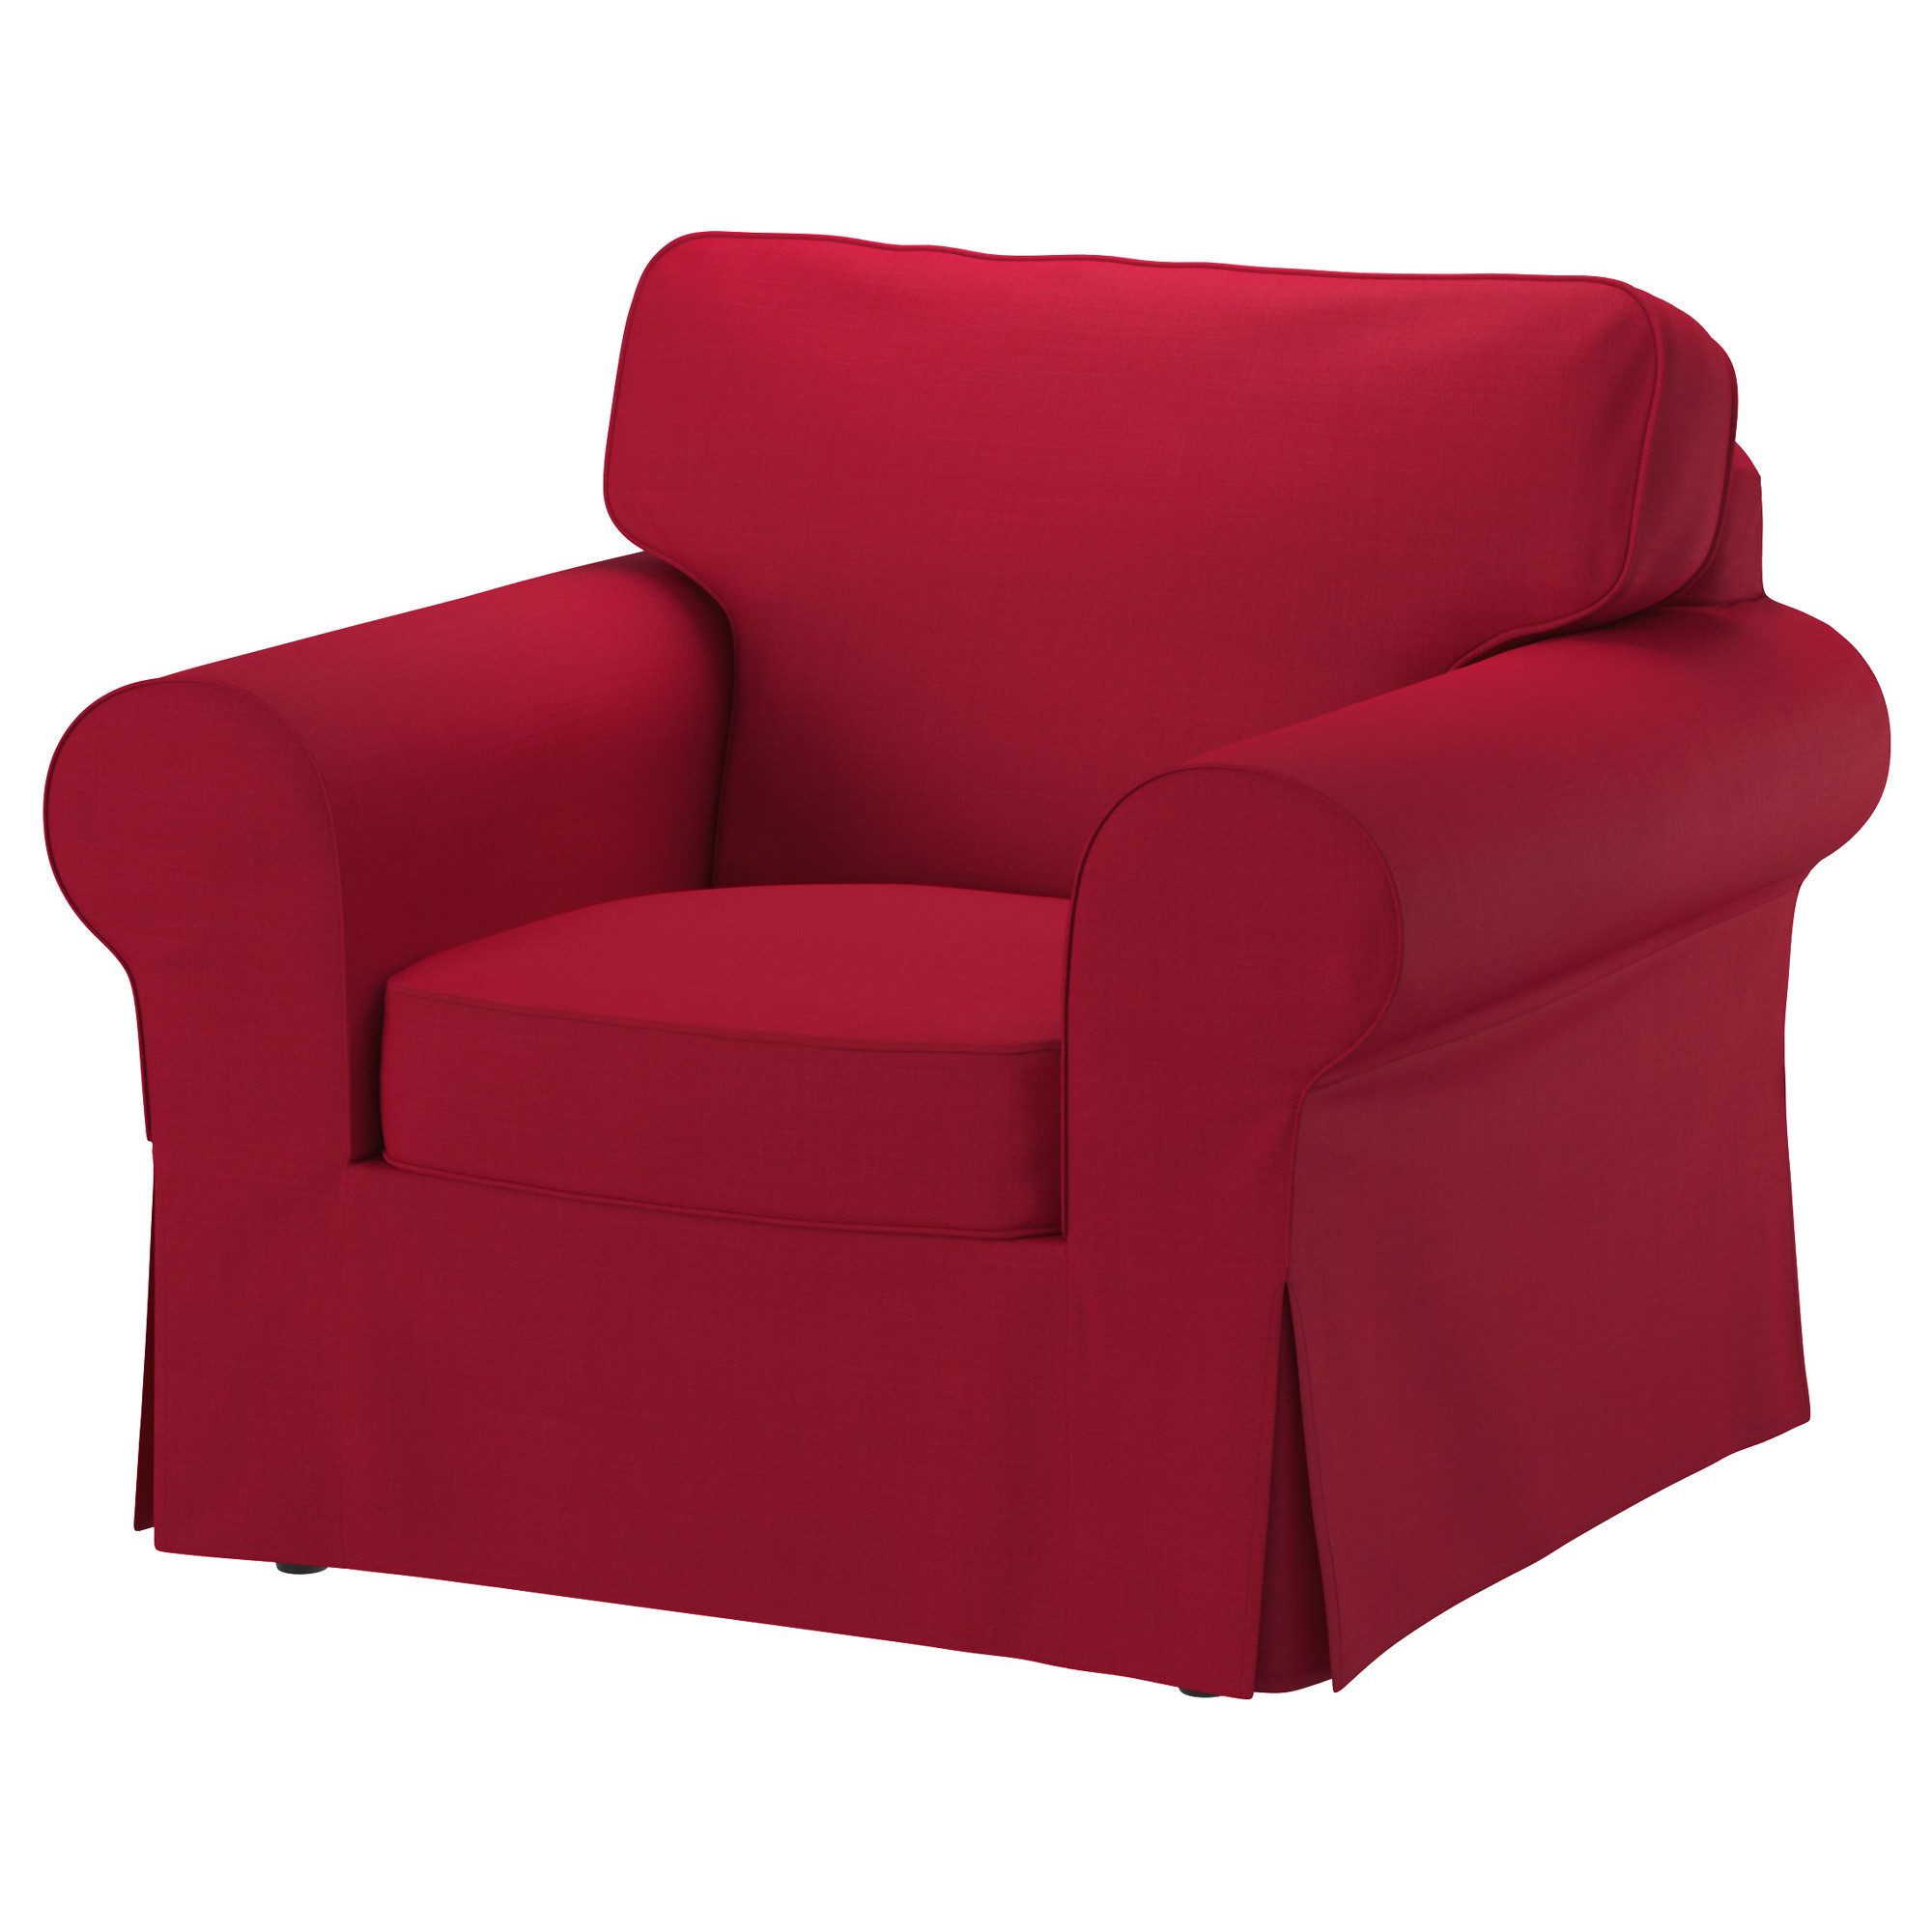 Oversized Chair Slipcover | Slipcovers for Oversized Chairs and Ottomans | Couch Covers at Walmart